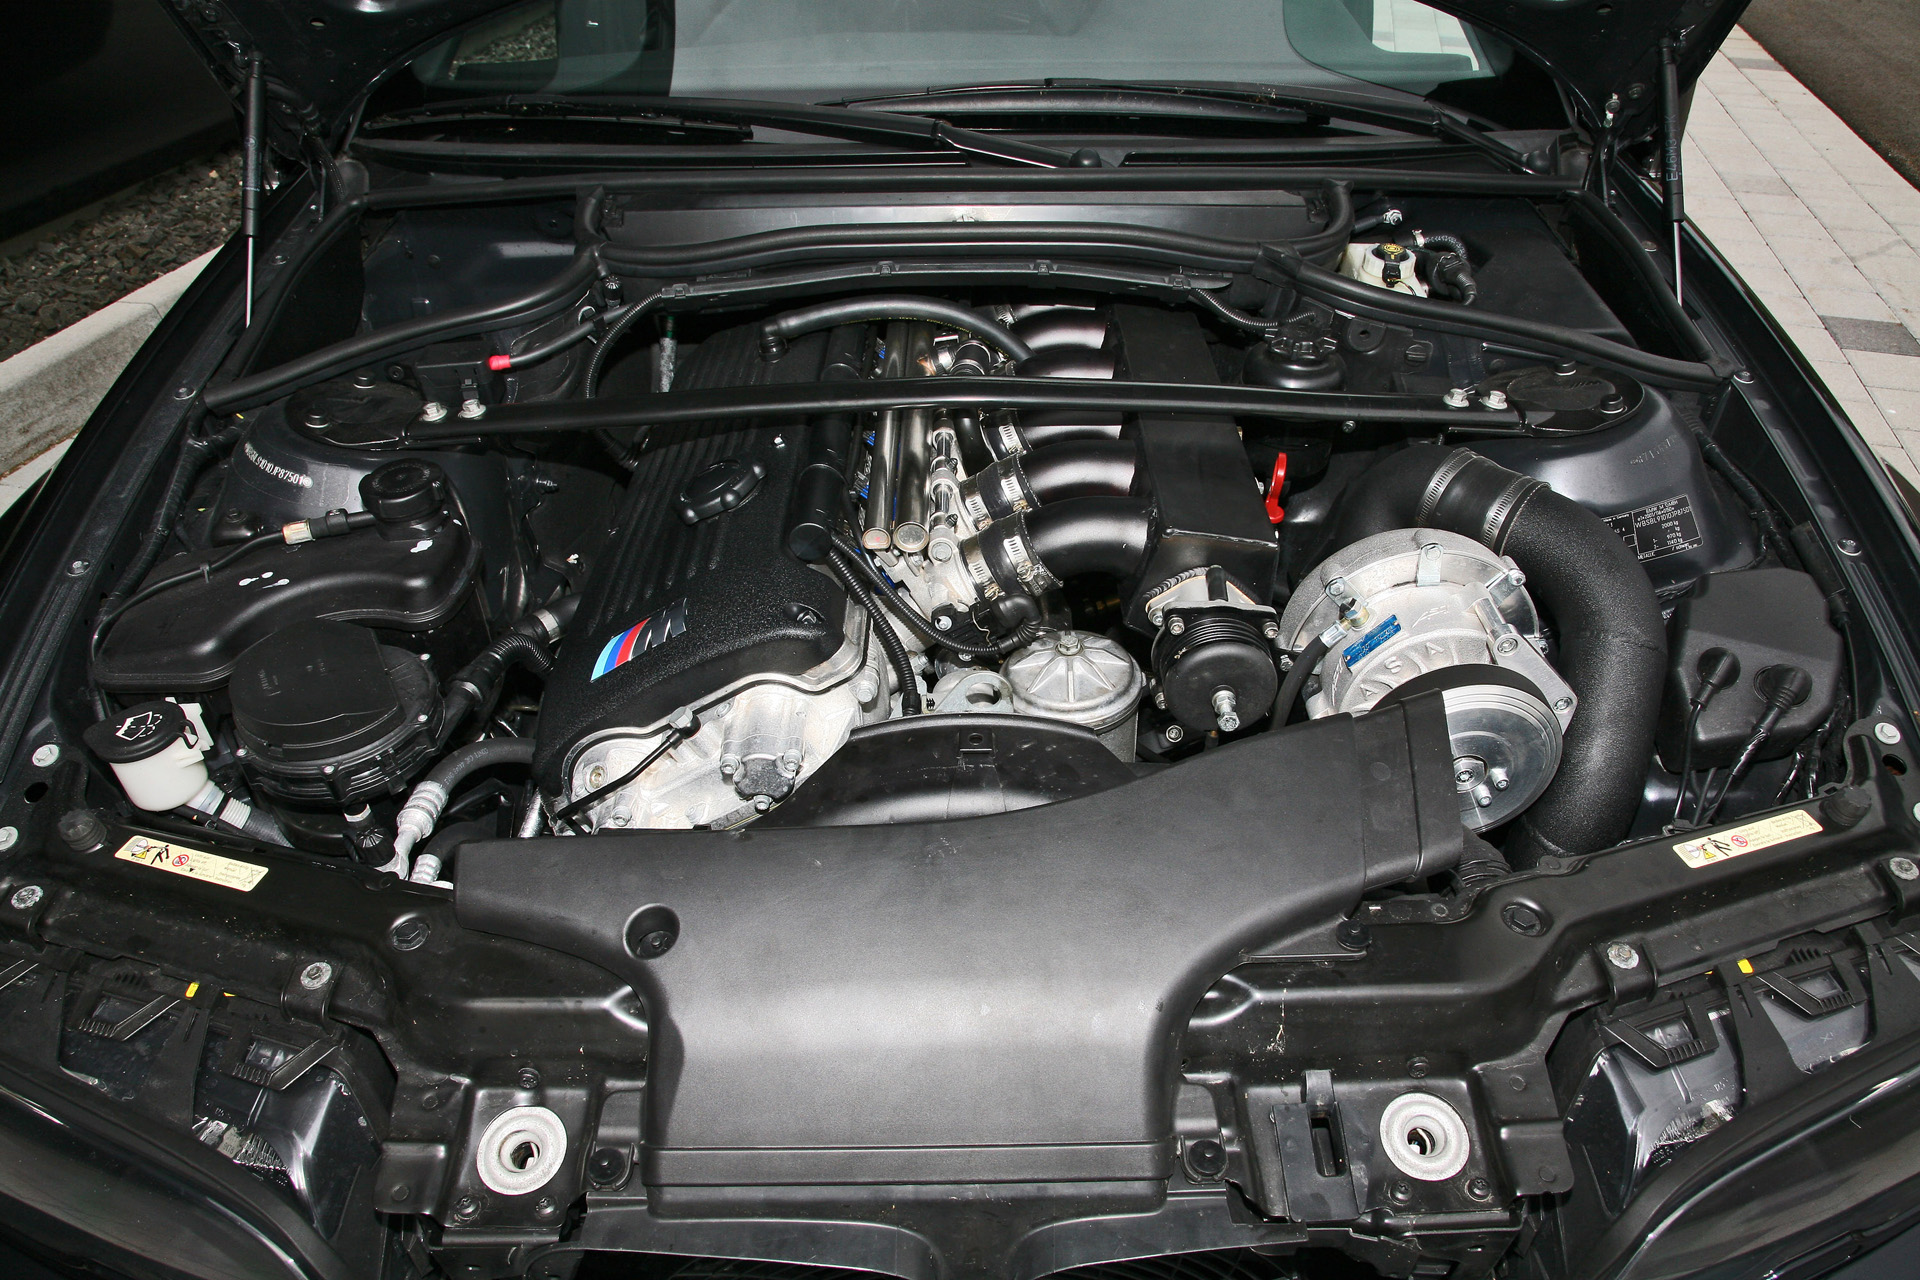 Kneibler Autotechnik BMW M3 E46 supercharged photo 67258